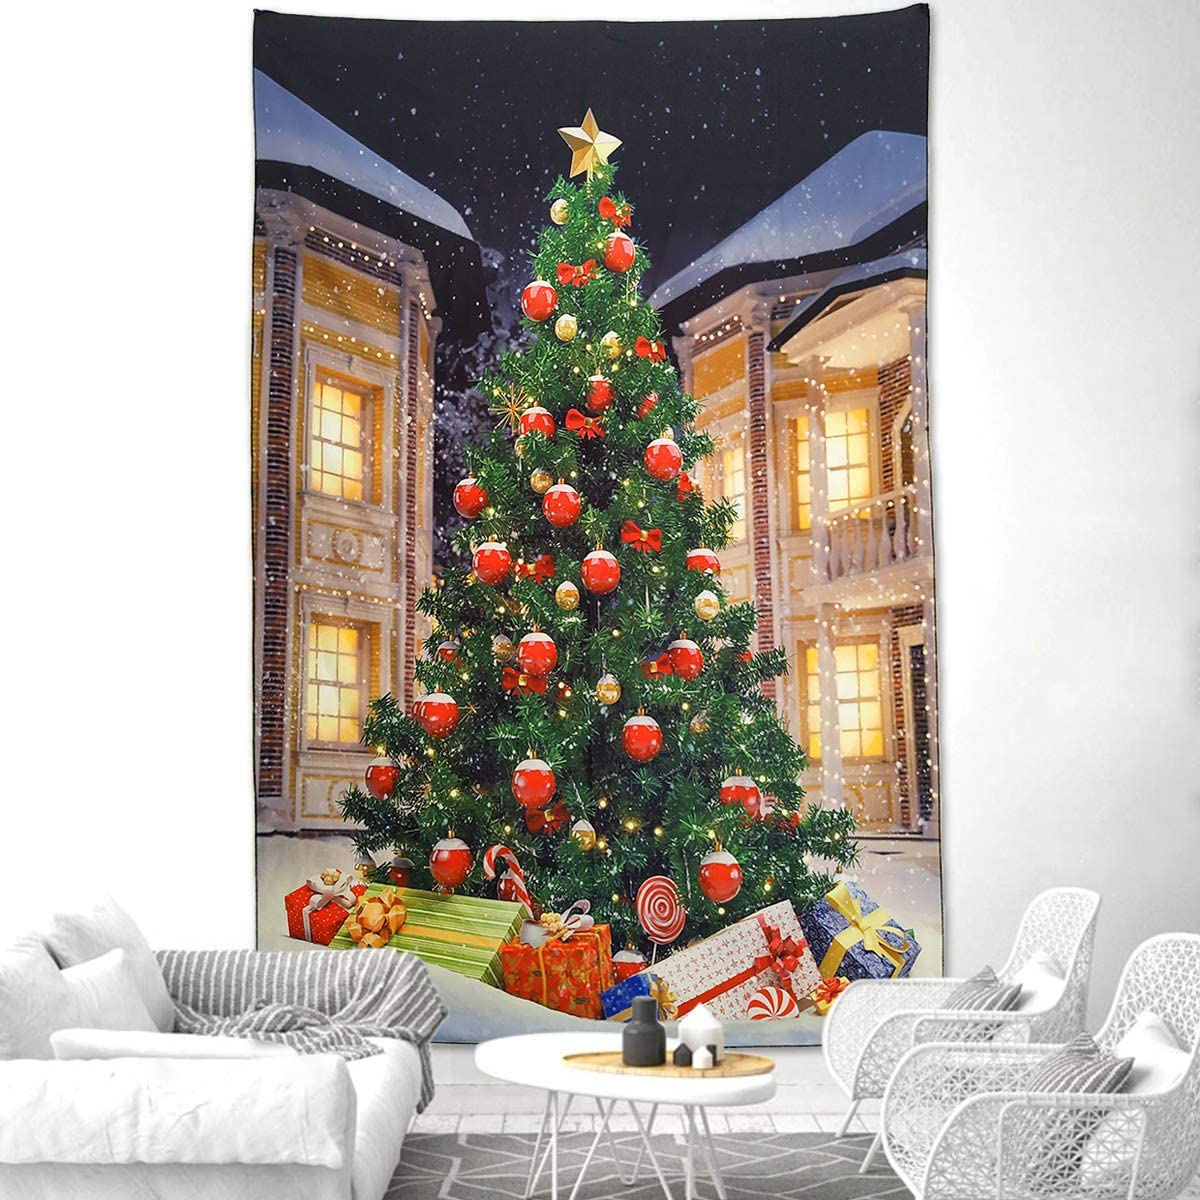 """NASKY Christmas Tree Tapestry Wall Hanging Xmas Tree with Gifts Tapestry Christmas Decorations Winter Festival Wall Tapestry for Home Party Decor(Christmas Tree,39.4""""X59.1""""(100x150cm))"""